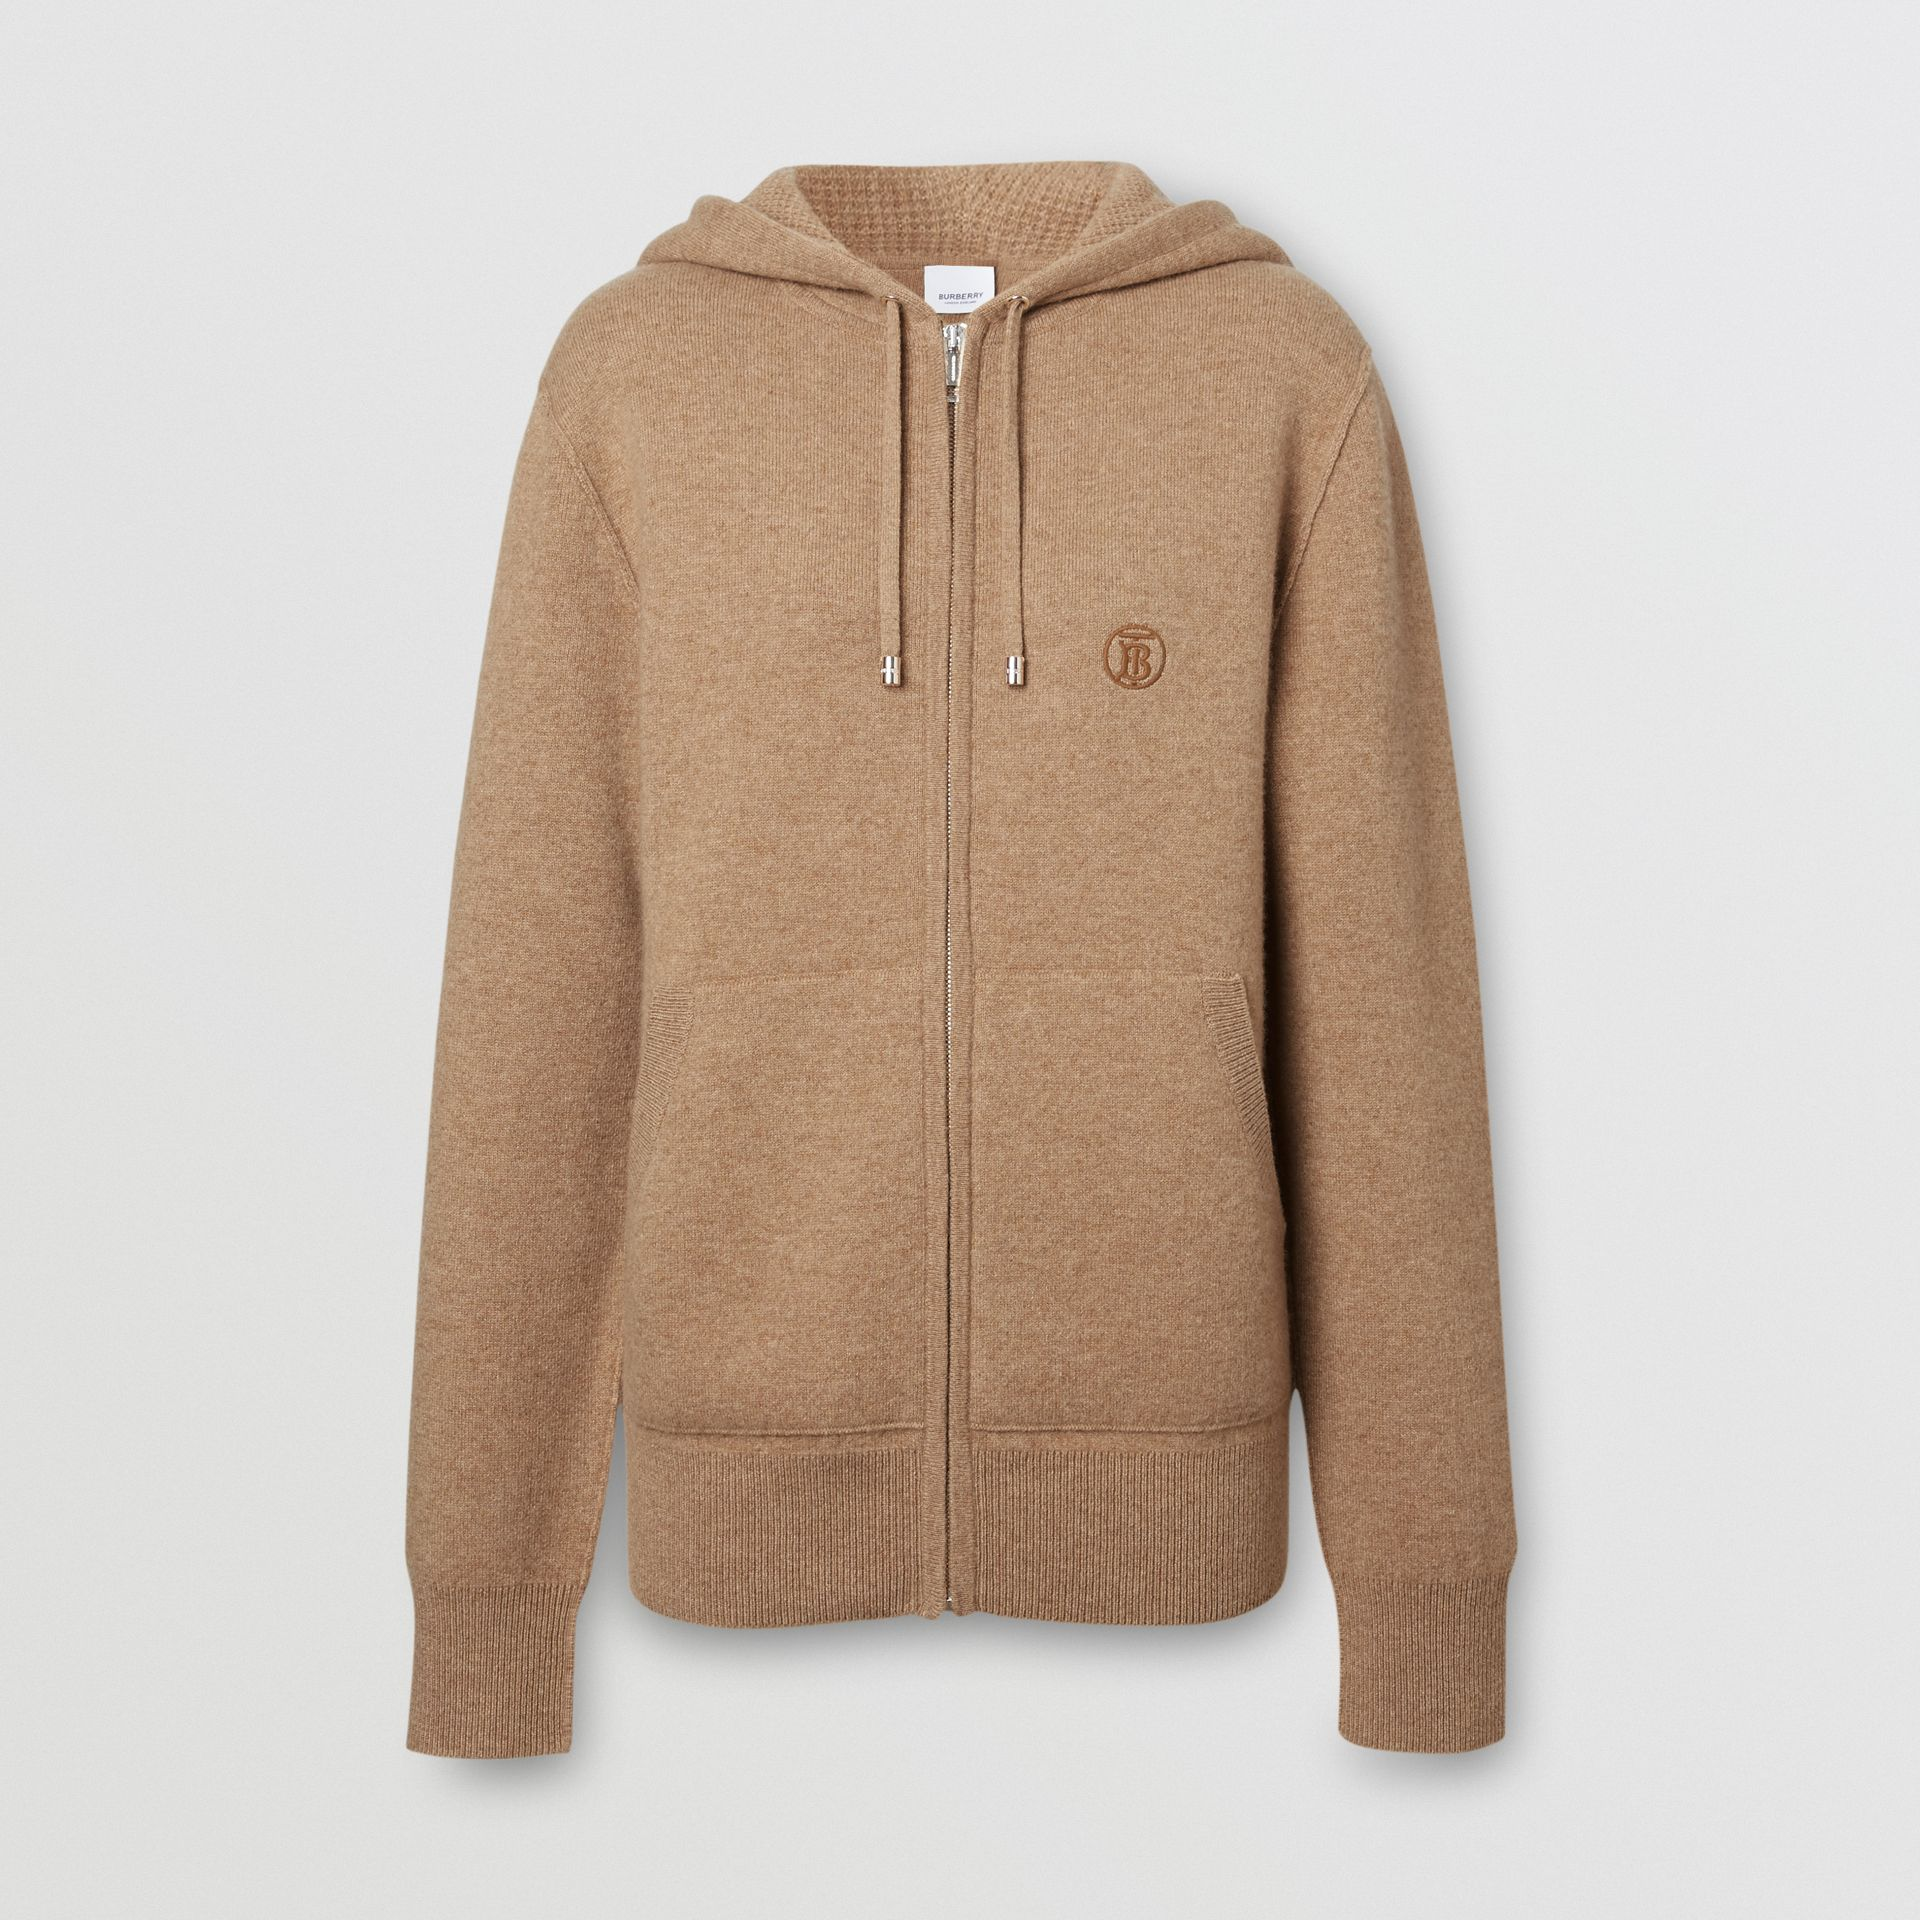 Monogram Motif Cashmere Blend Hooded Top in Pale Coffee - Women | Burberry United Kingdom - gallery image 3